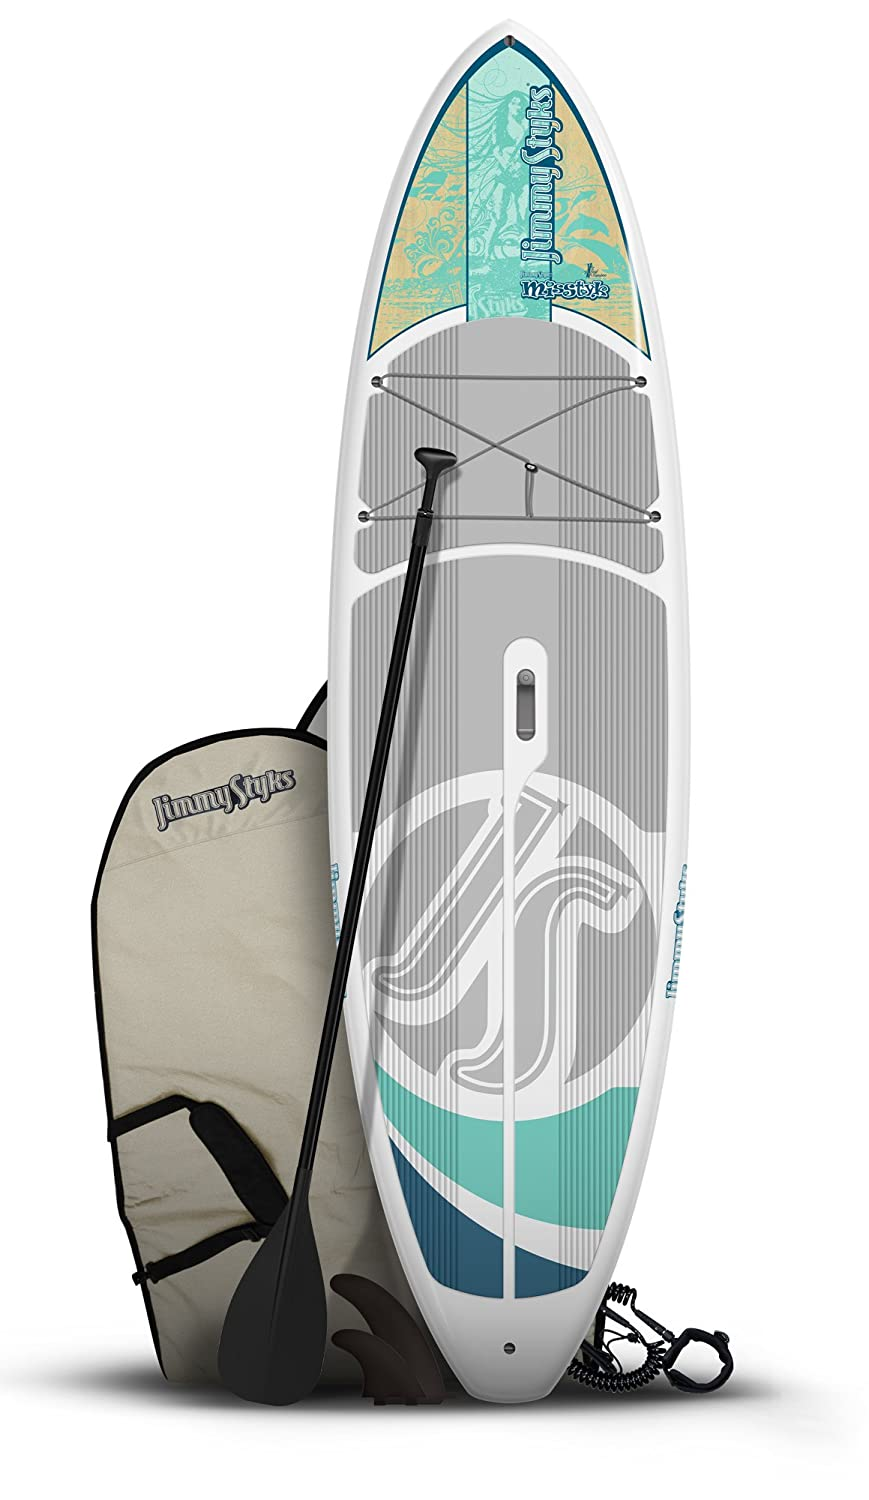 Jimmy Styks Misstyk Stand Up Paddle Board